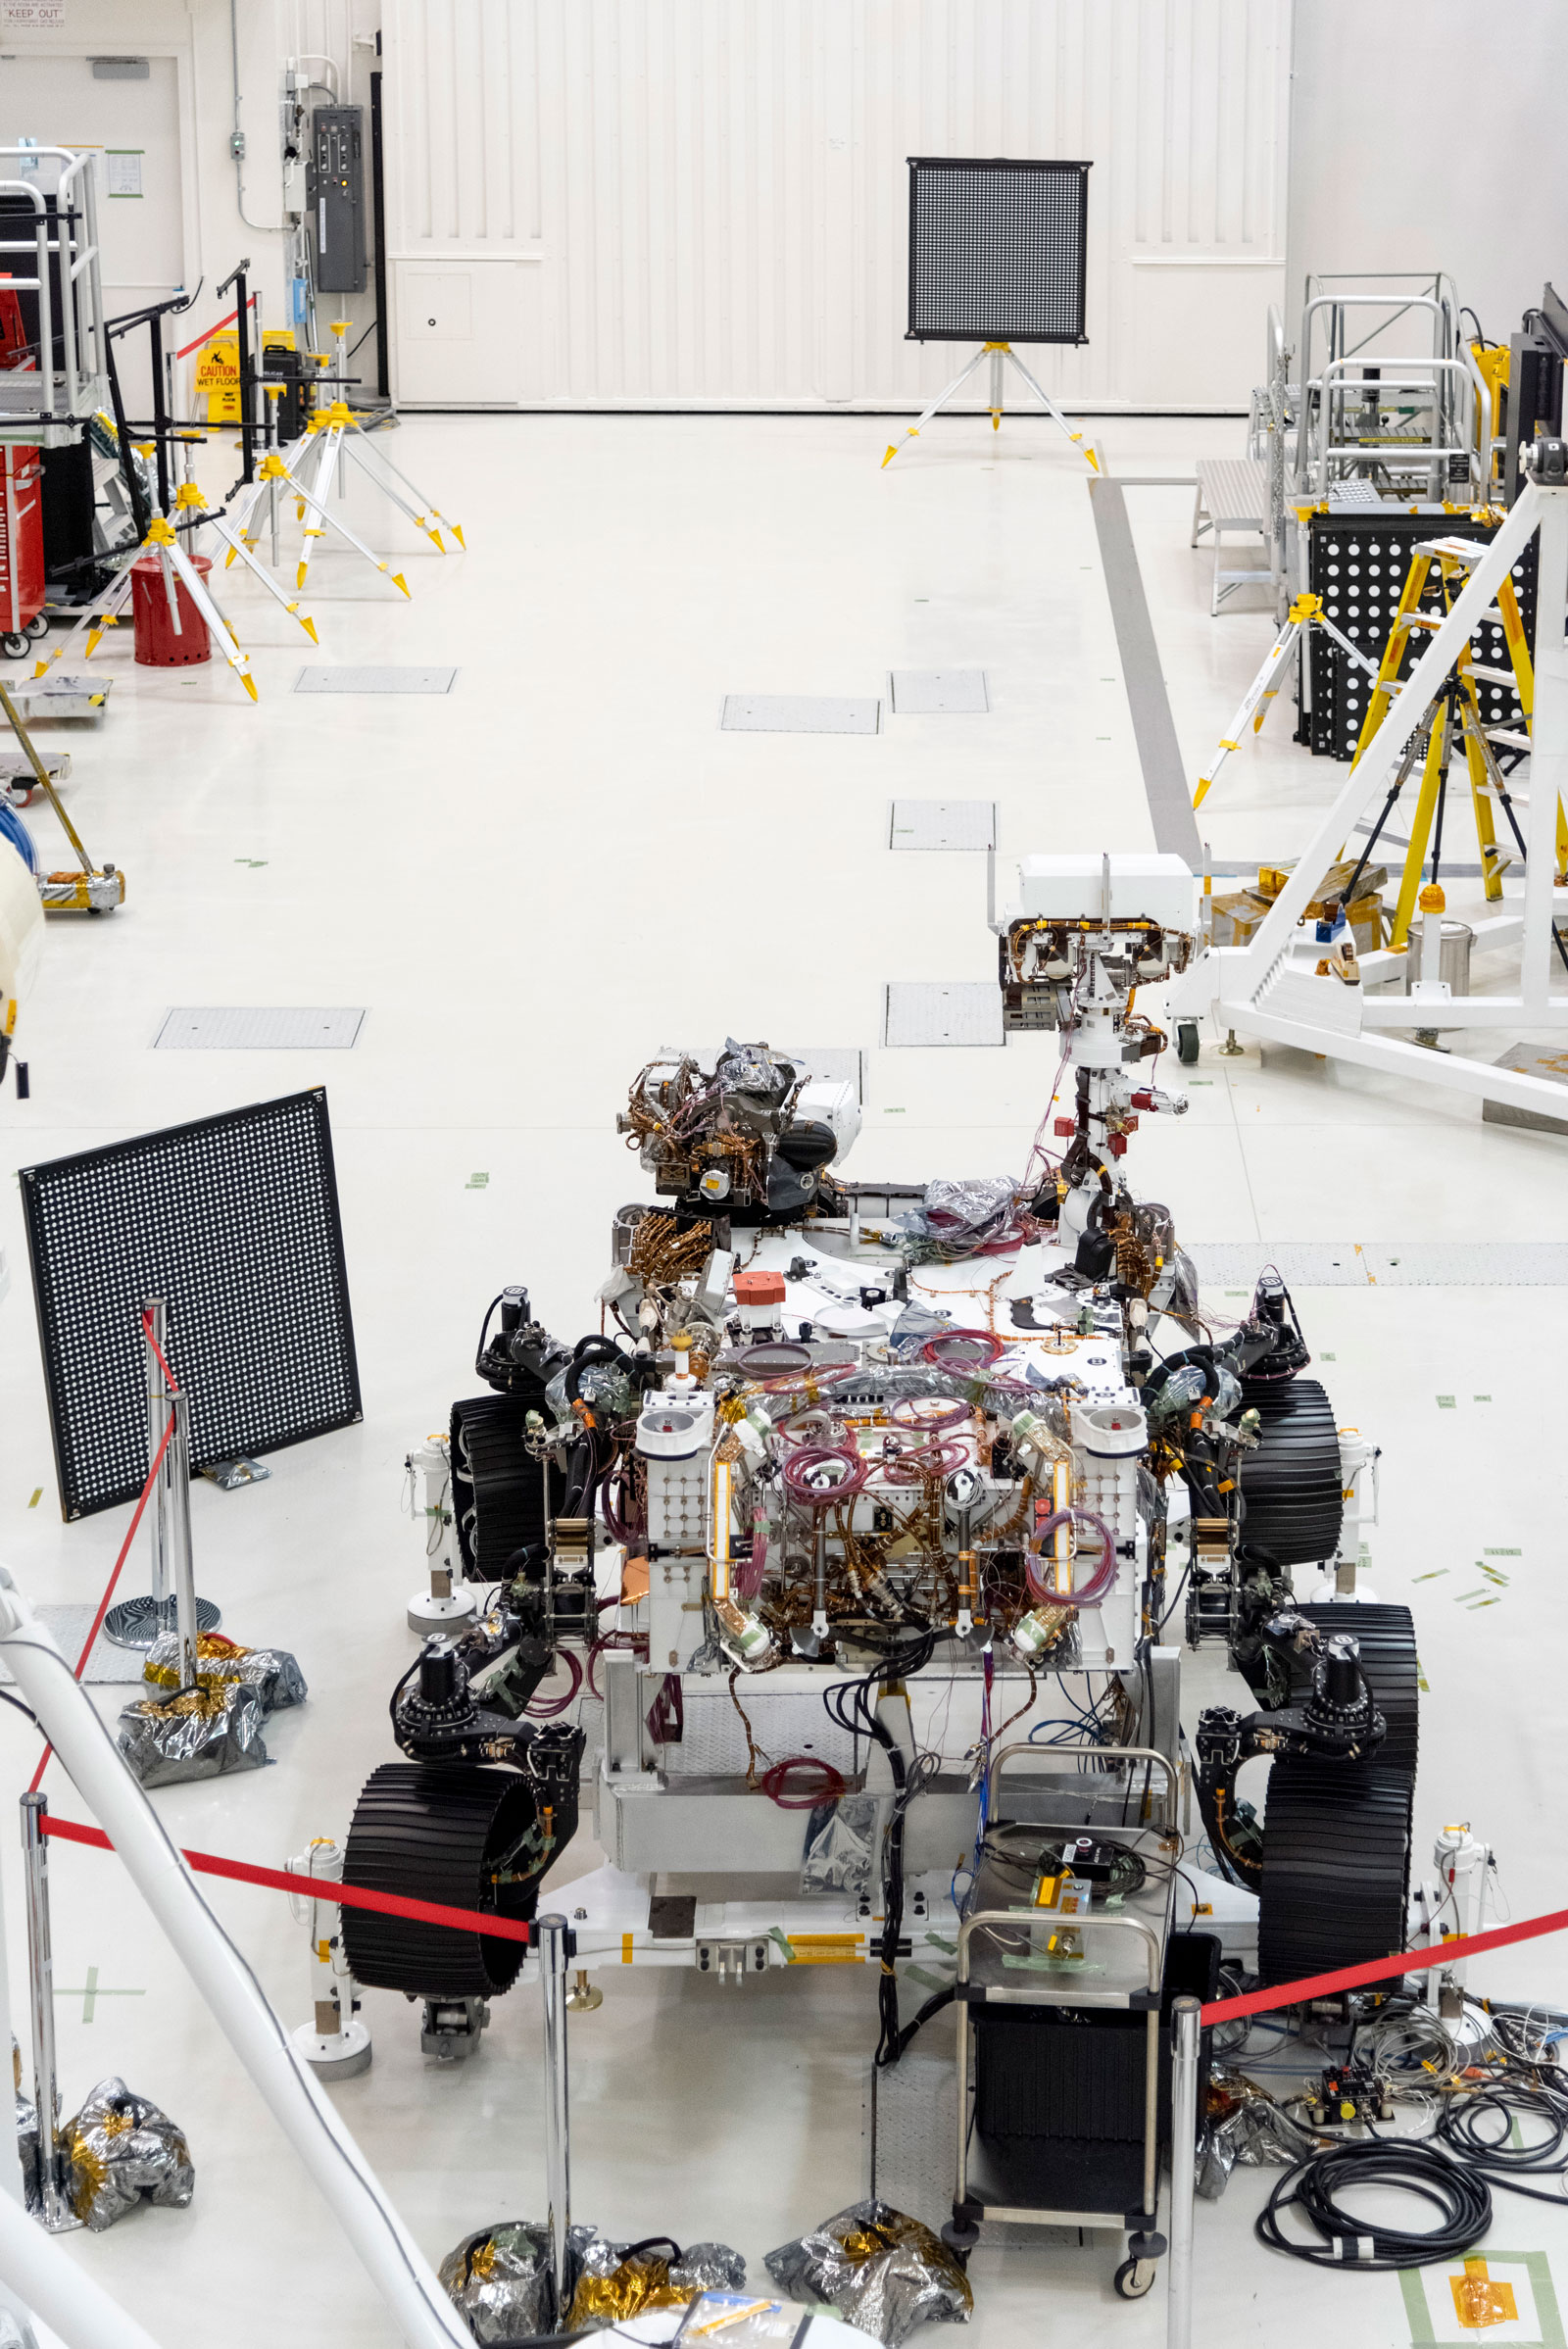 "The Mars 2020 rover undergoes an ""eye"" exam after several cameras were installed. The rover carries everything from wide-angle landscape cameras to narrow-angle high-resolution zoom lens cameras. The image was taken on July 23, 2019, in the Spacecraft Assembly Facility's High Bay 1 at the Jet Propulsion Laboratory in Pasadena, California."